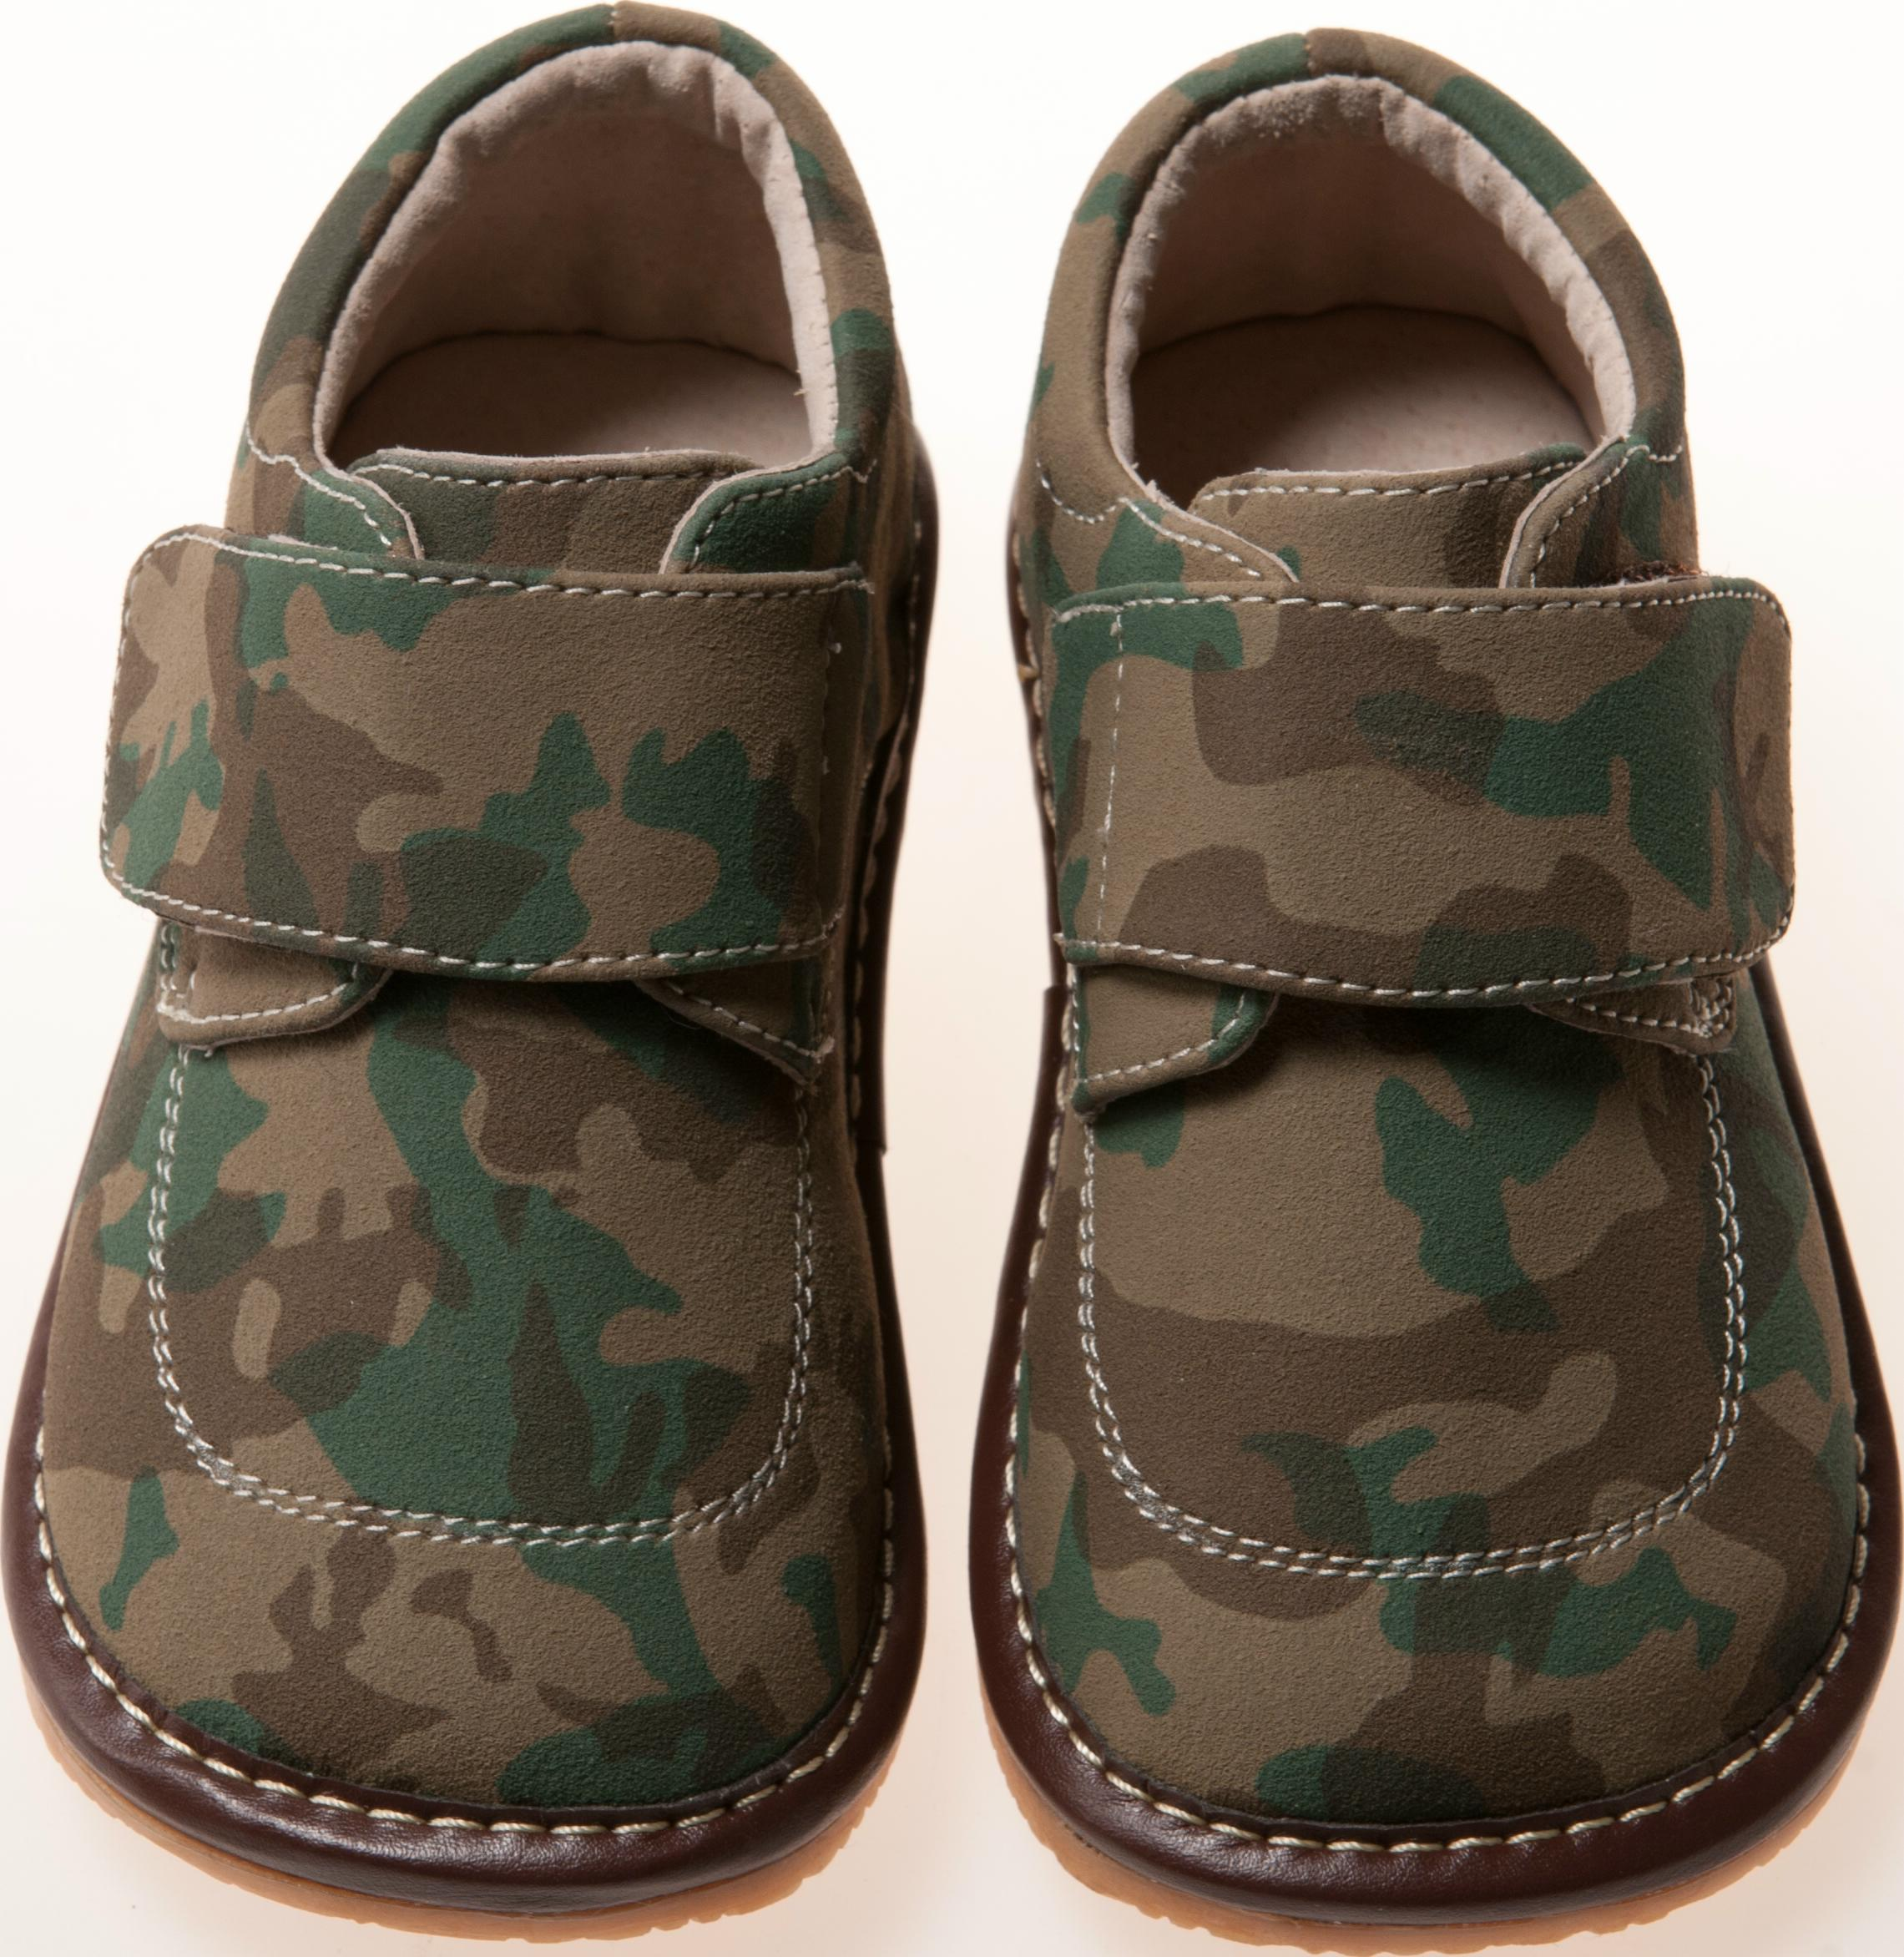 Leather Boy Camo Squeaky Shoes Toddler